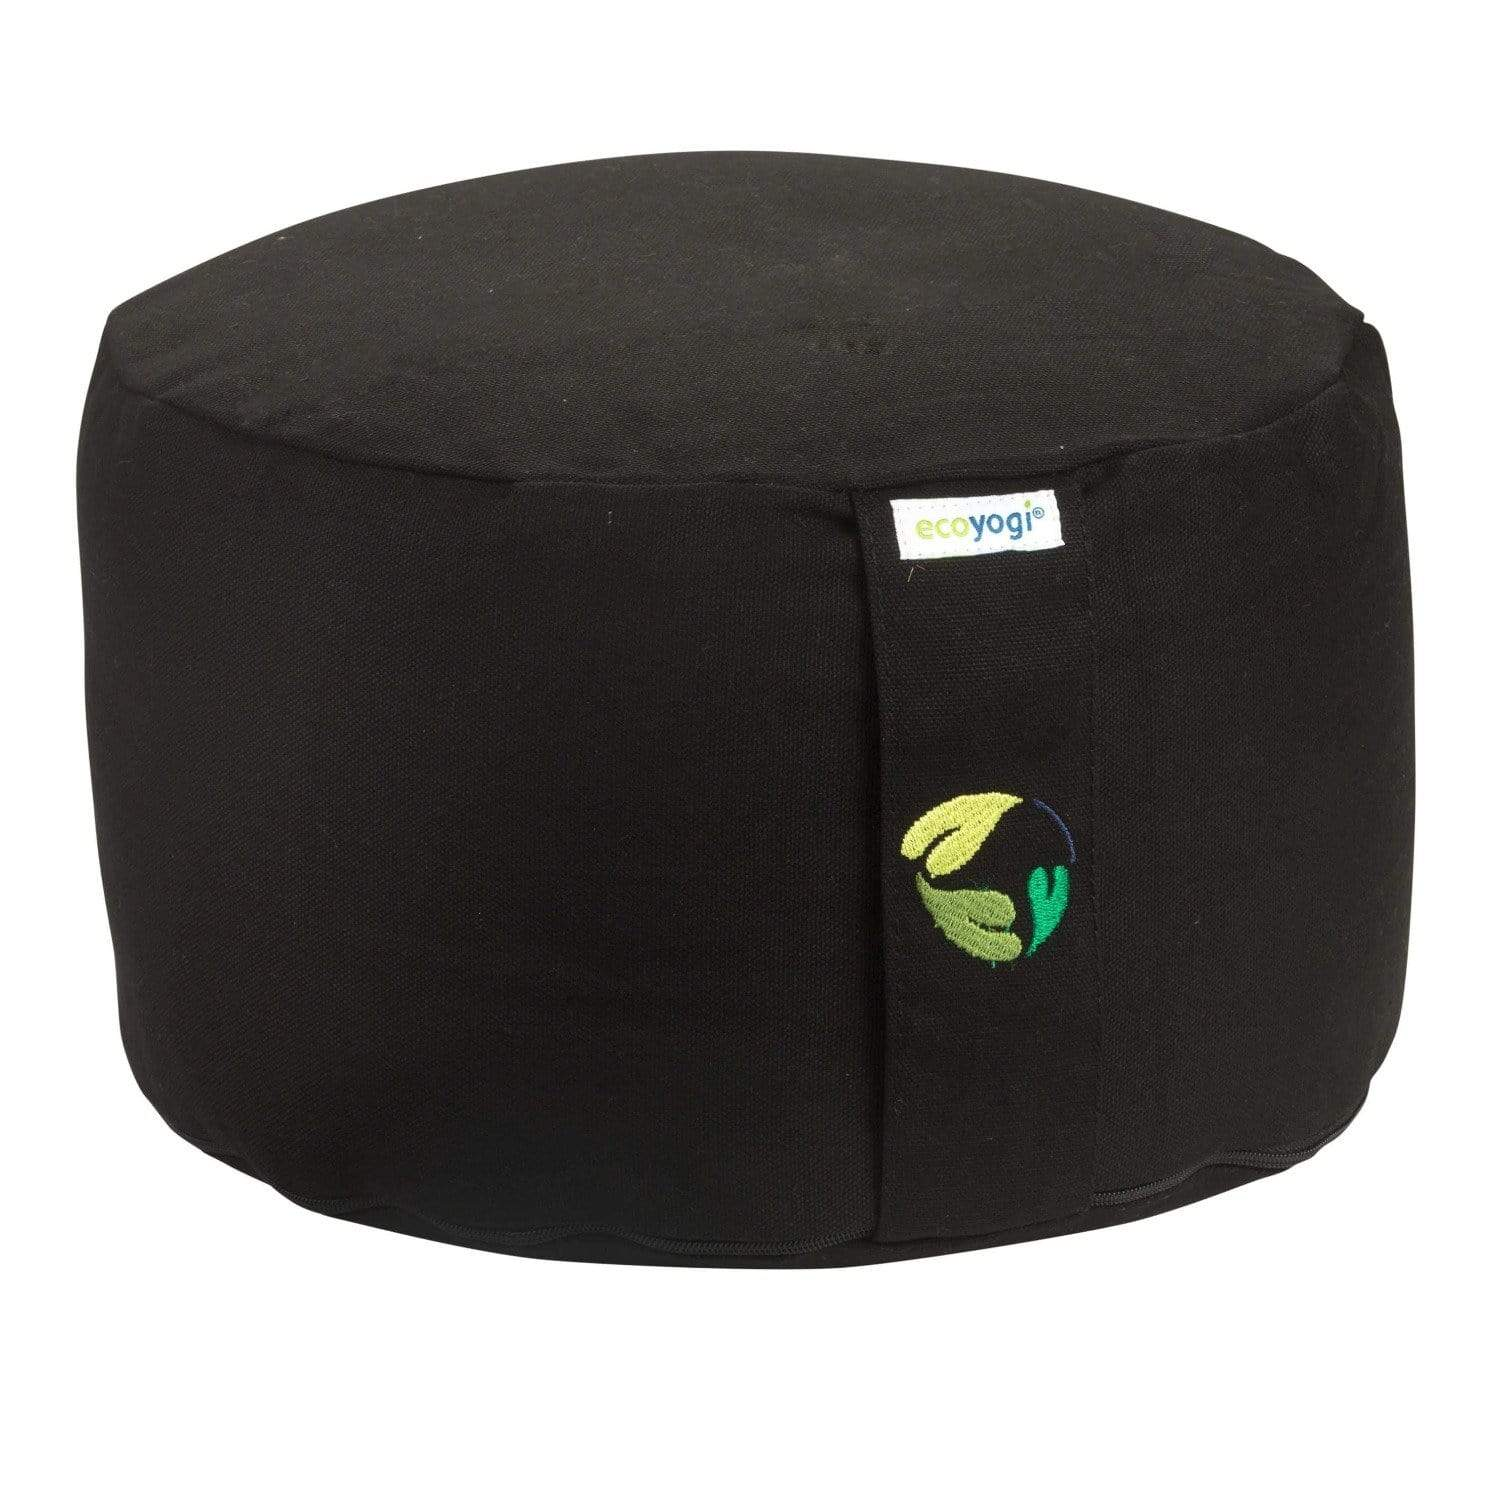 Sustainable meditation cushion in black made of organic cotton (GOTS certified) and filling in natural purified buckwheat chaff